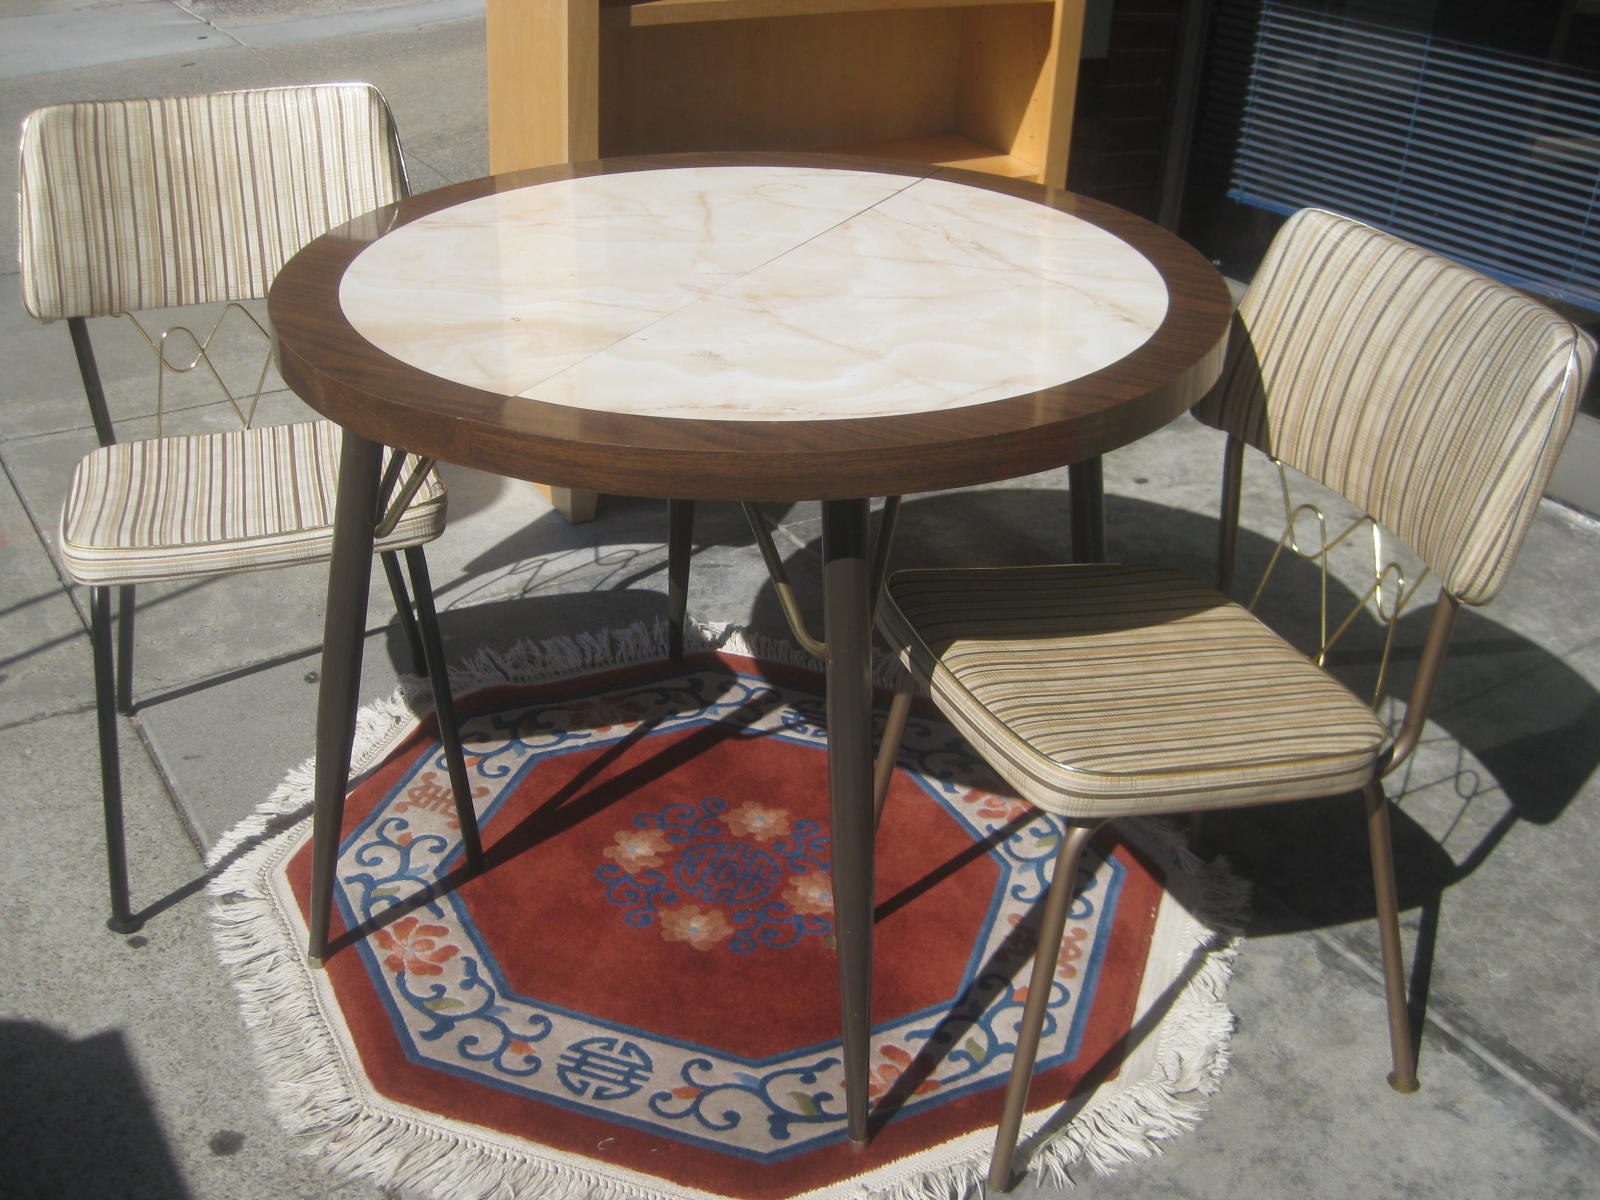 UHURU FURNITURE & COLLECTIBLES: SOLD - Retro Kitchen Table and Two ...